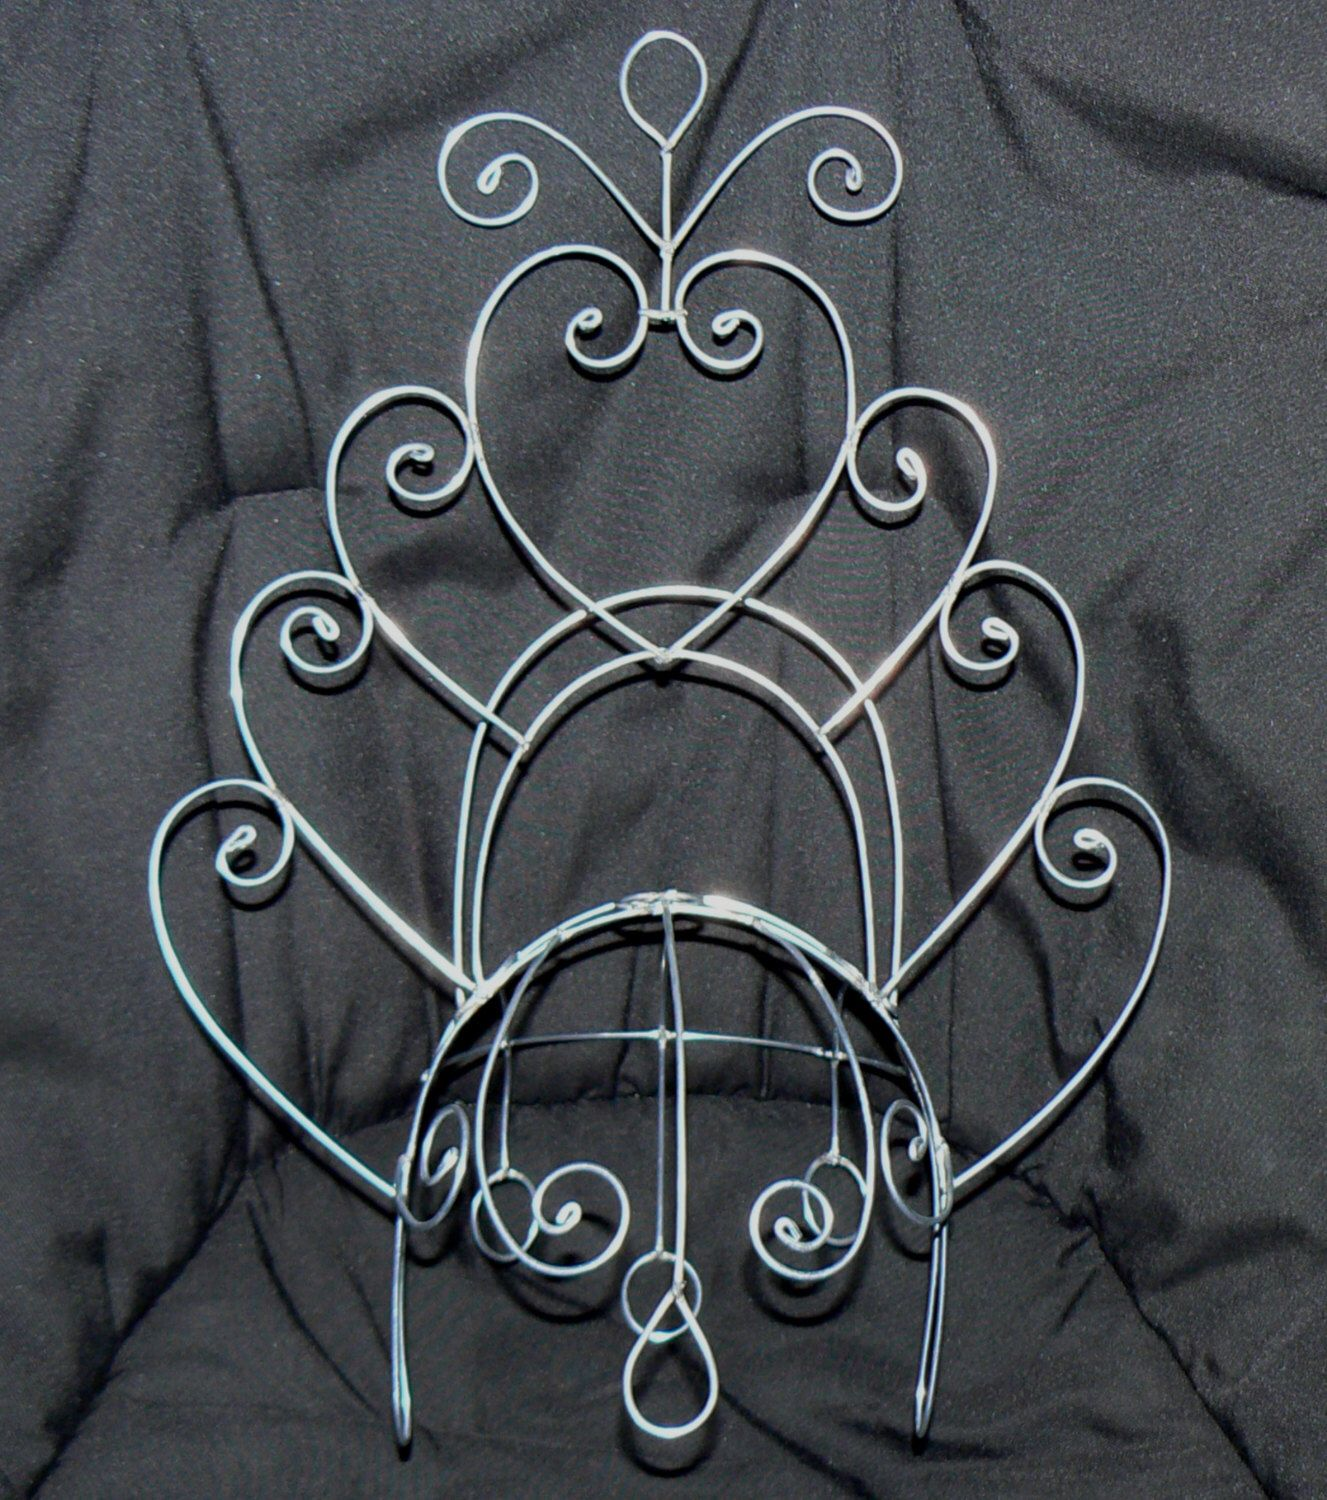 samba aphrodite headdress wire frame design custom made by geckomeister on etsy https